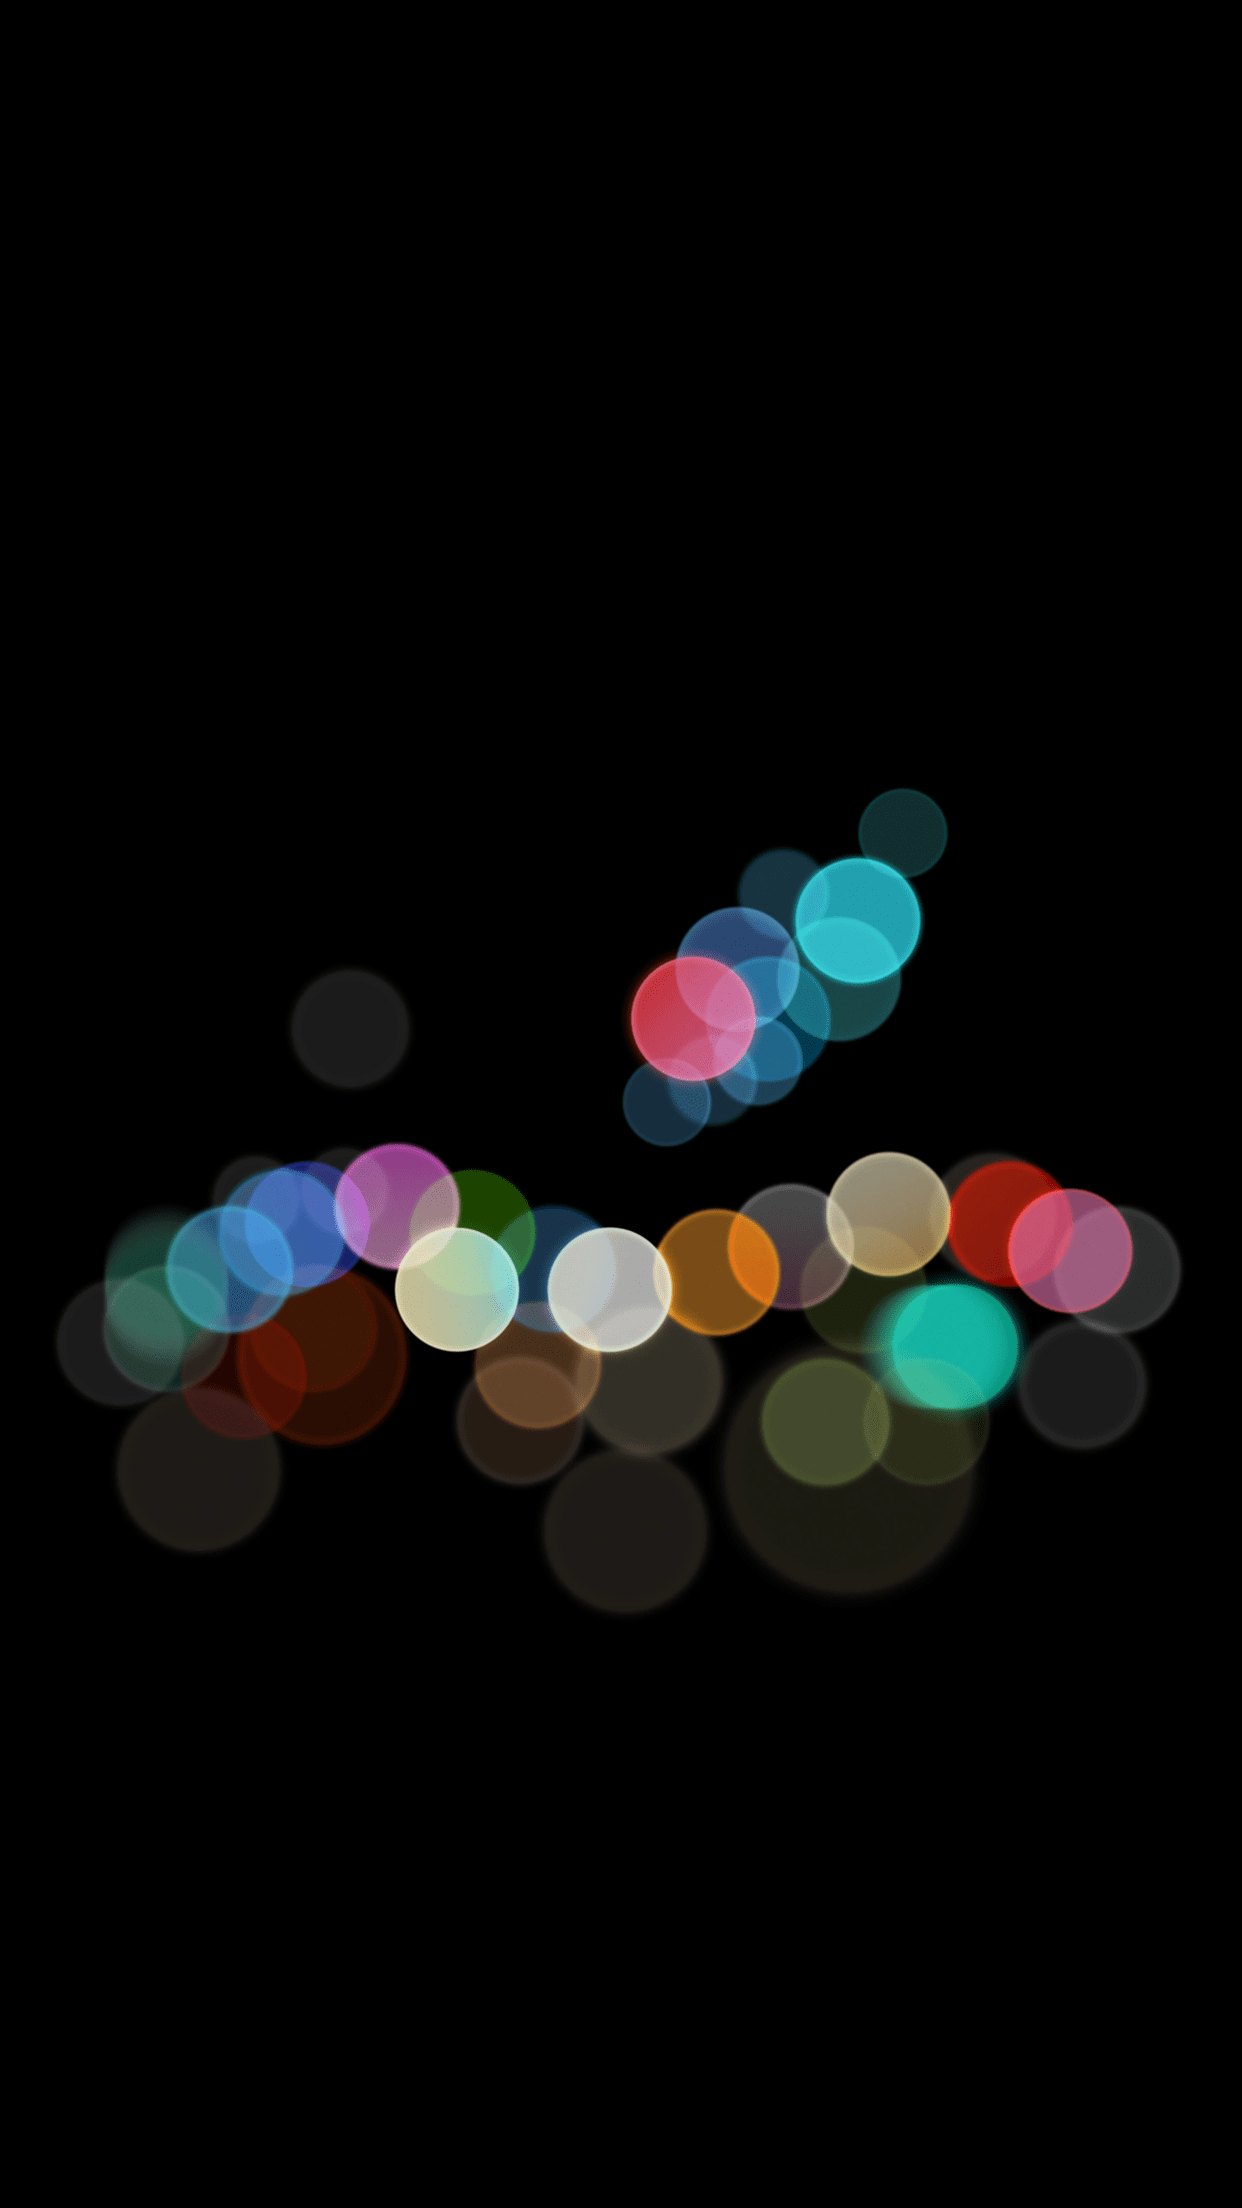 Iphone X Inspired Wallpapers More September 7 Apple Media Event Wallpapers